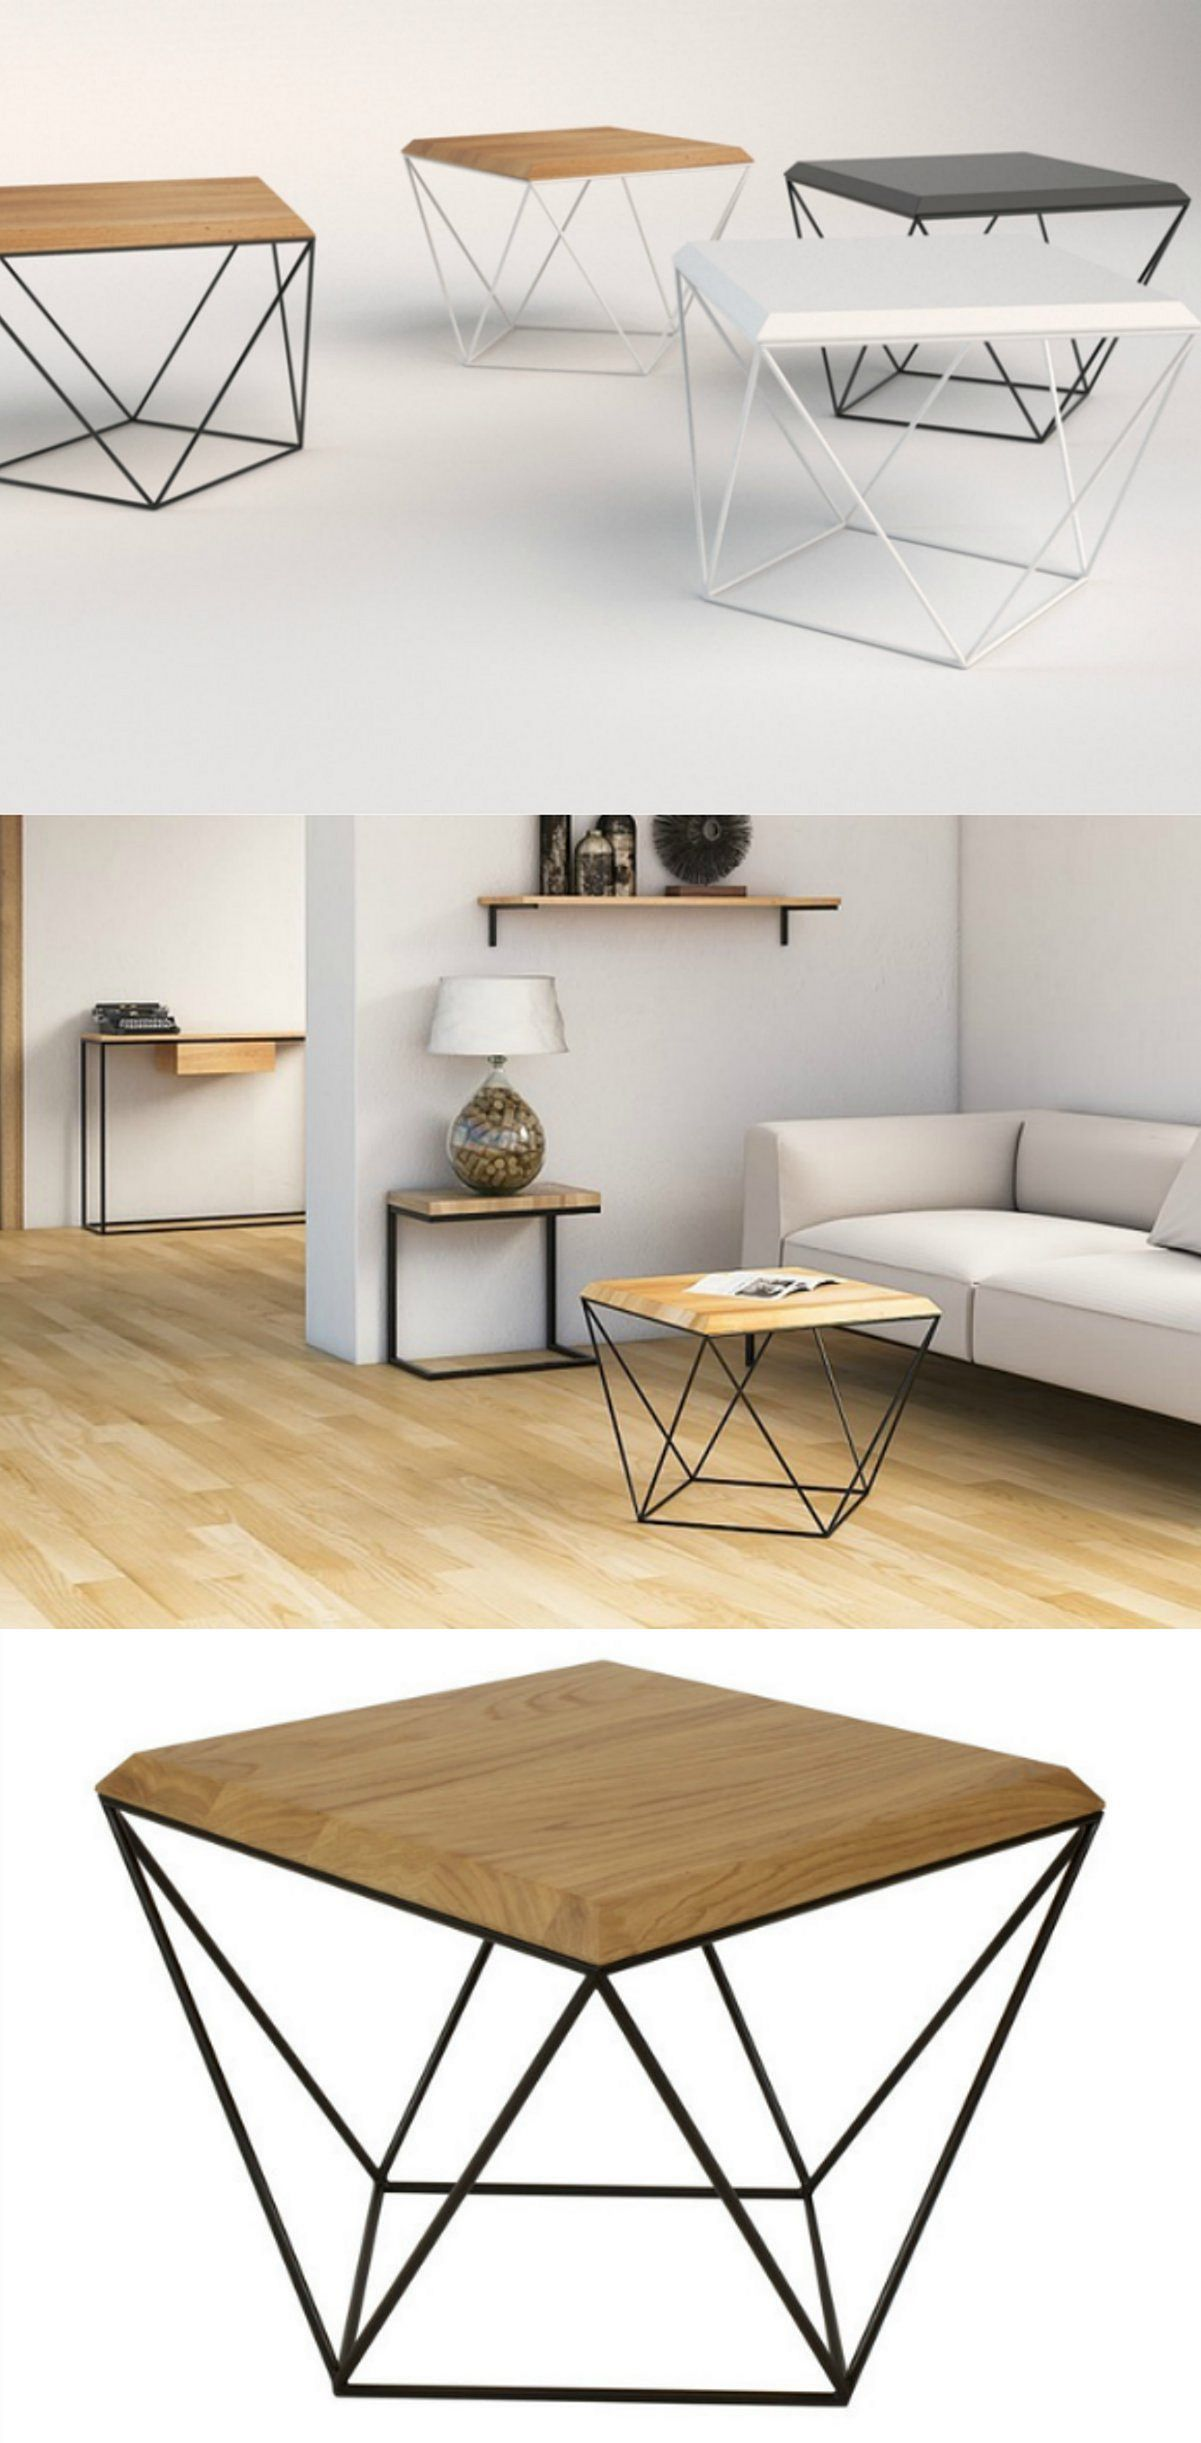 ... Minimalist Furniture Design Ideas For Your Home And Apartment  Https://freshouz.com/35 Stunning Minimalist Furniture Design Ideas Home  Apartment/